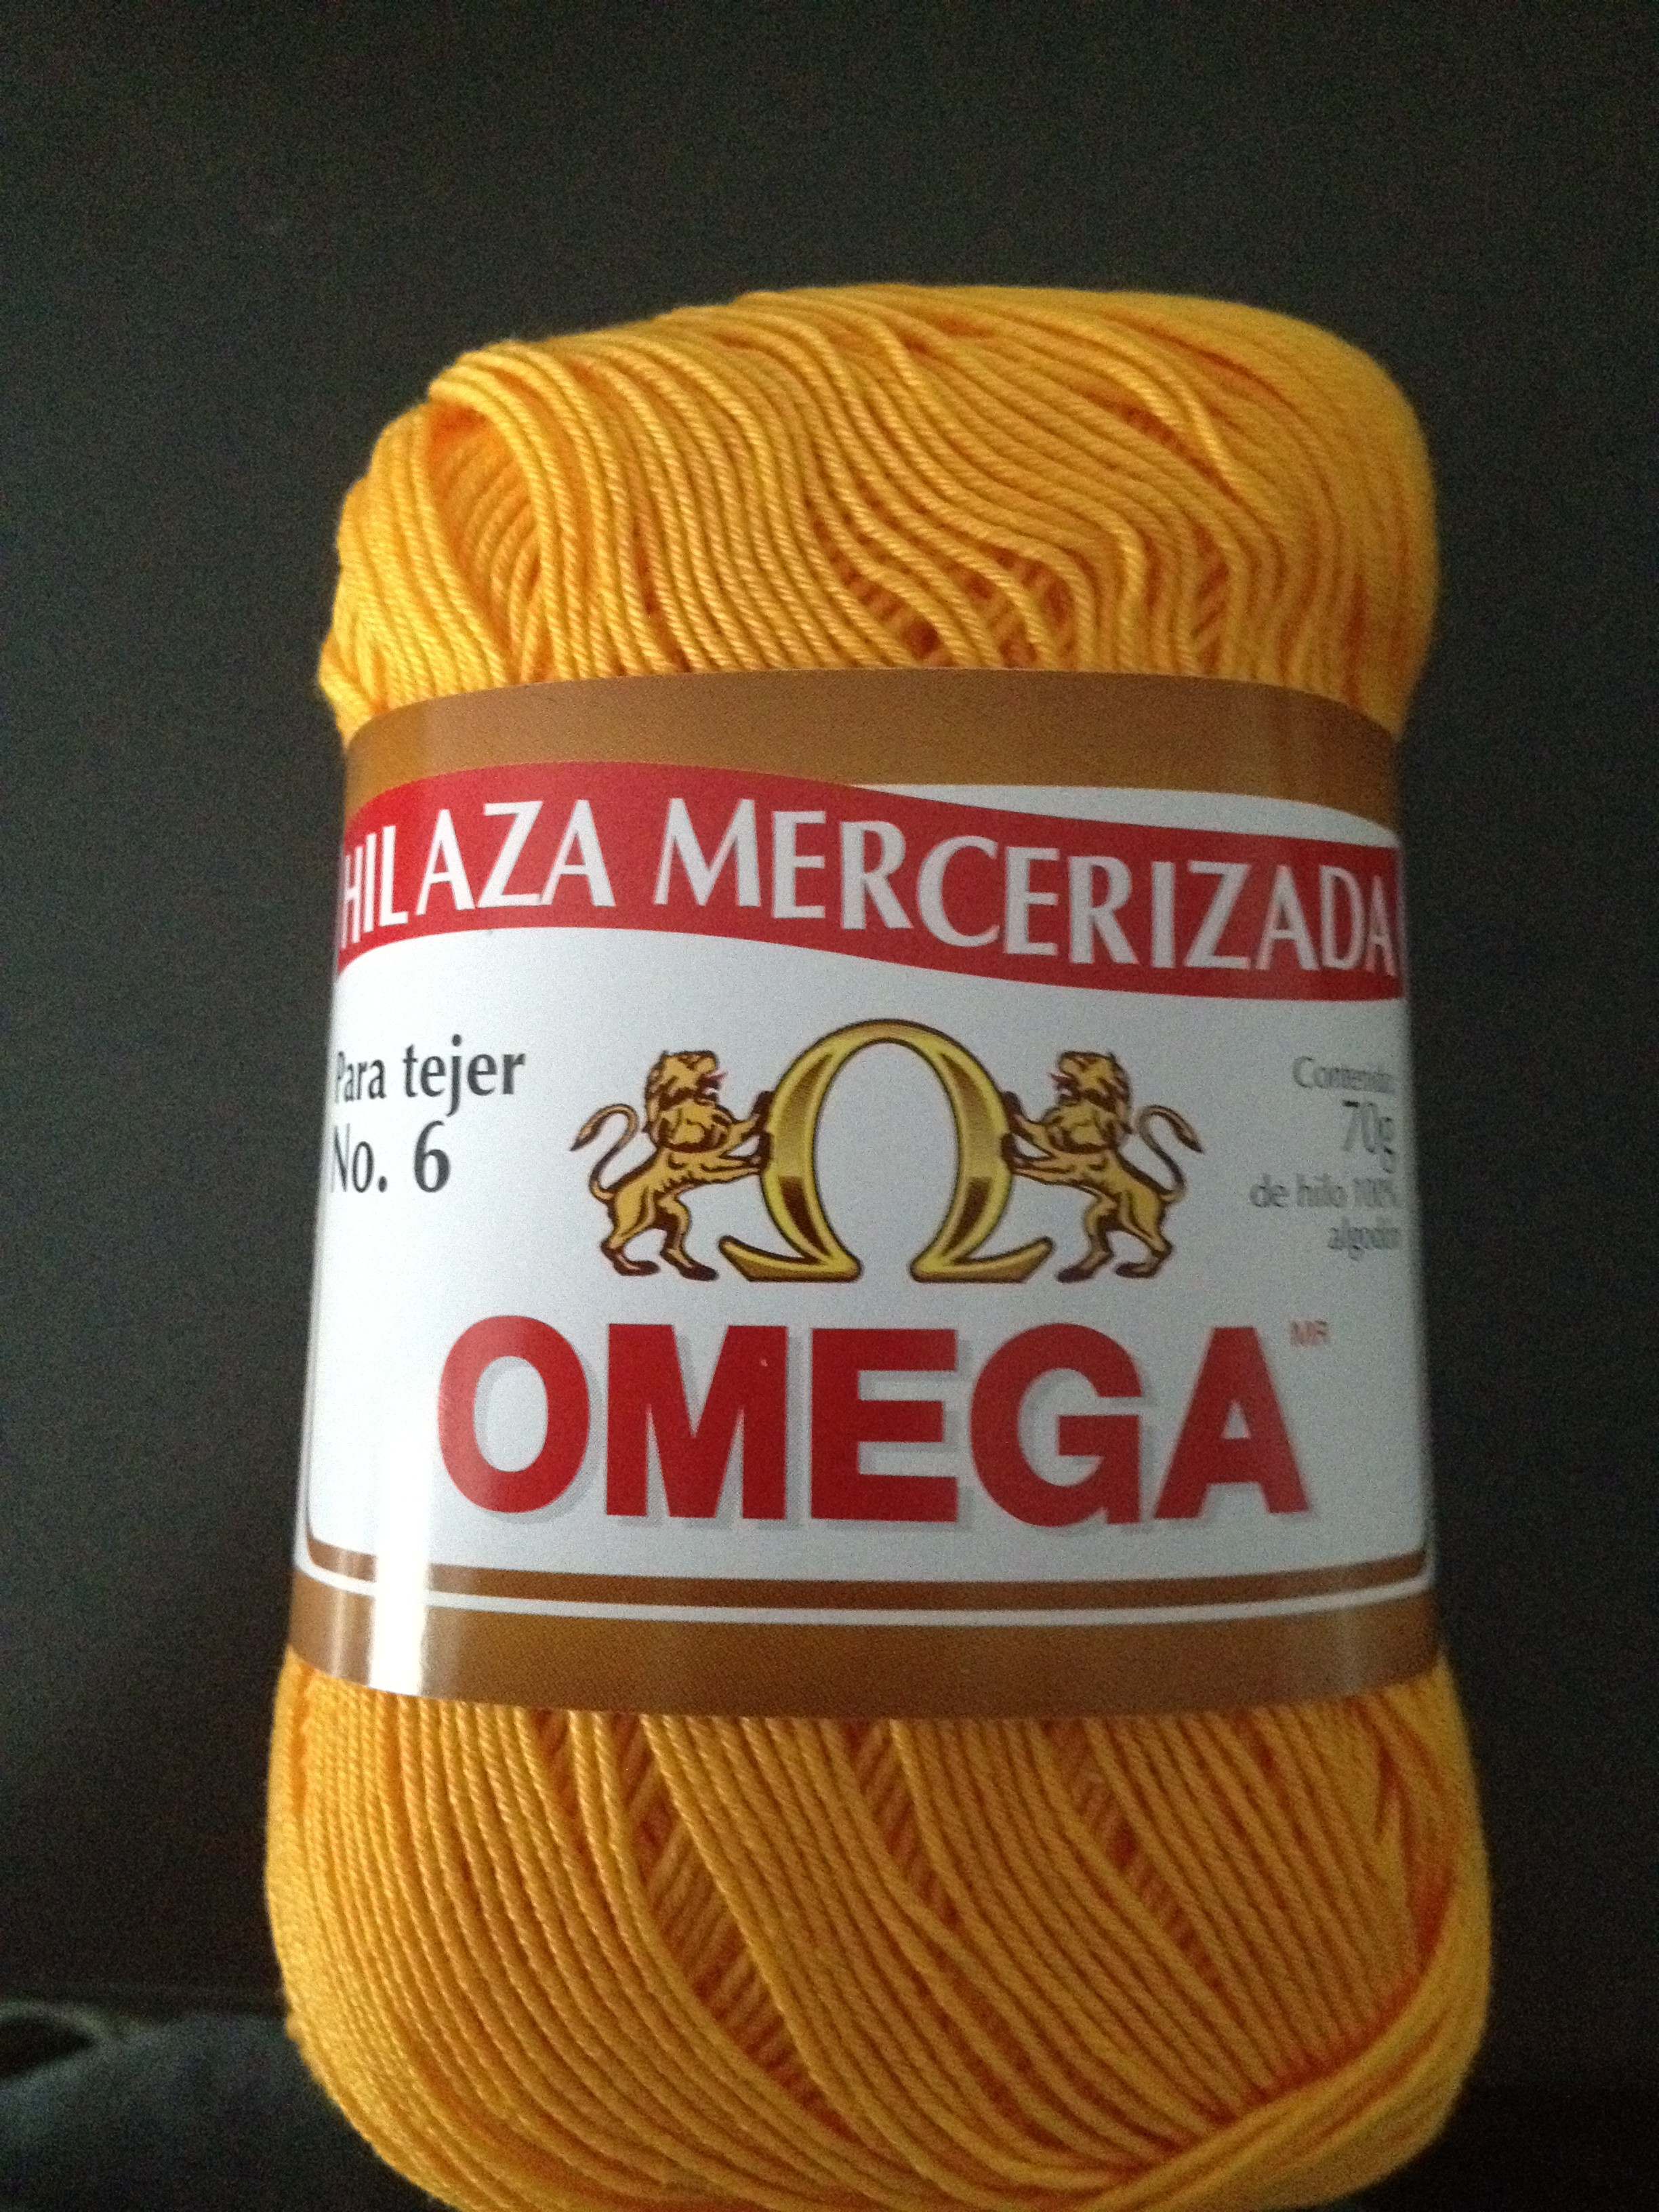 Omega Yarn New Yarn Picture Of the Week Omega Hilaza 6 the Lindsey Life Of Awesome 49 Pictures Omega Yarn